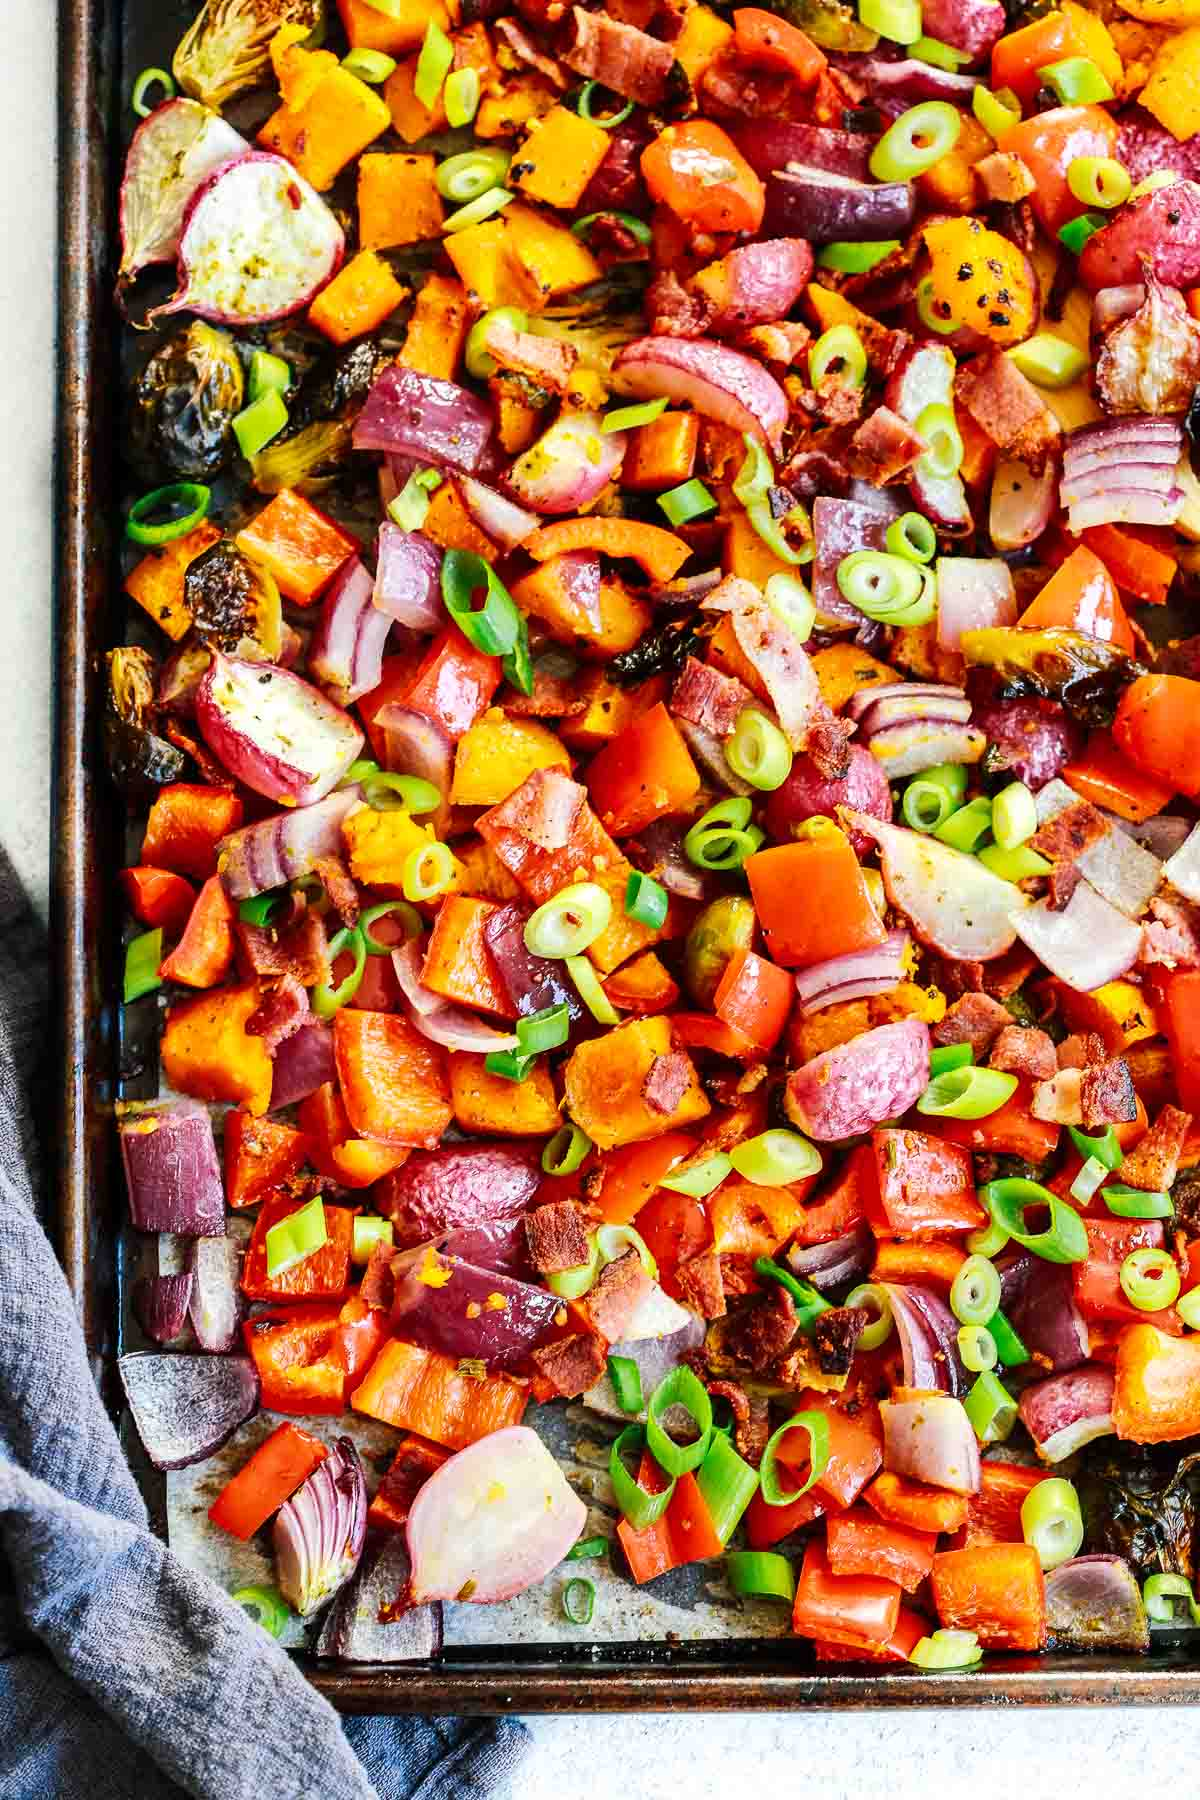 Overhead photo of a sheet pan with roasted vegetables.